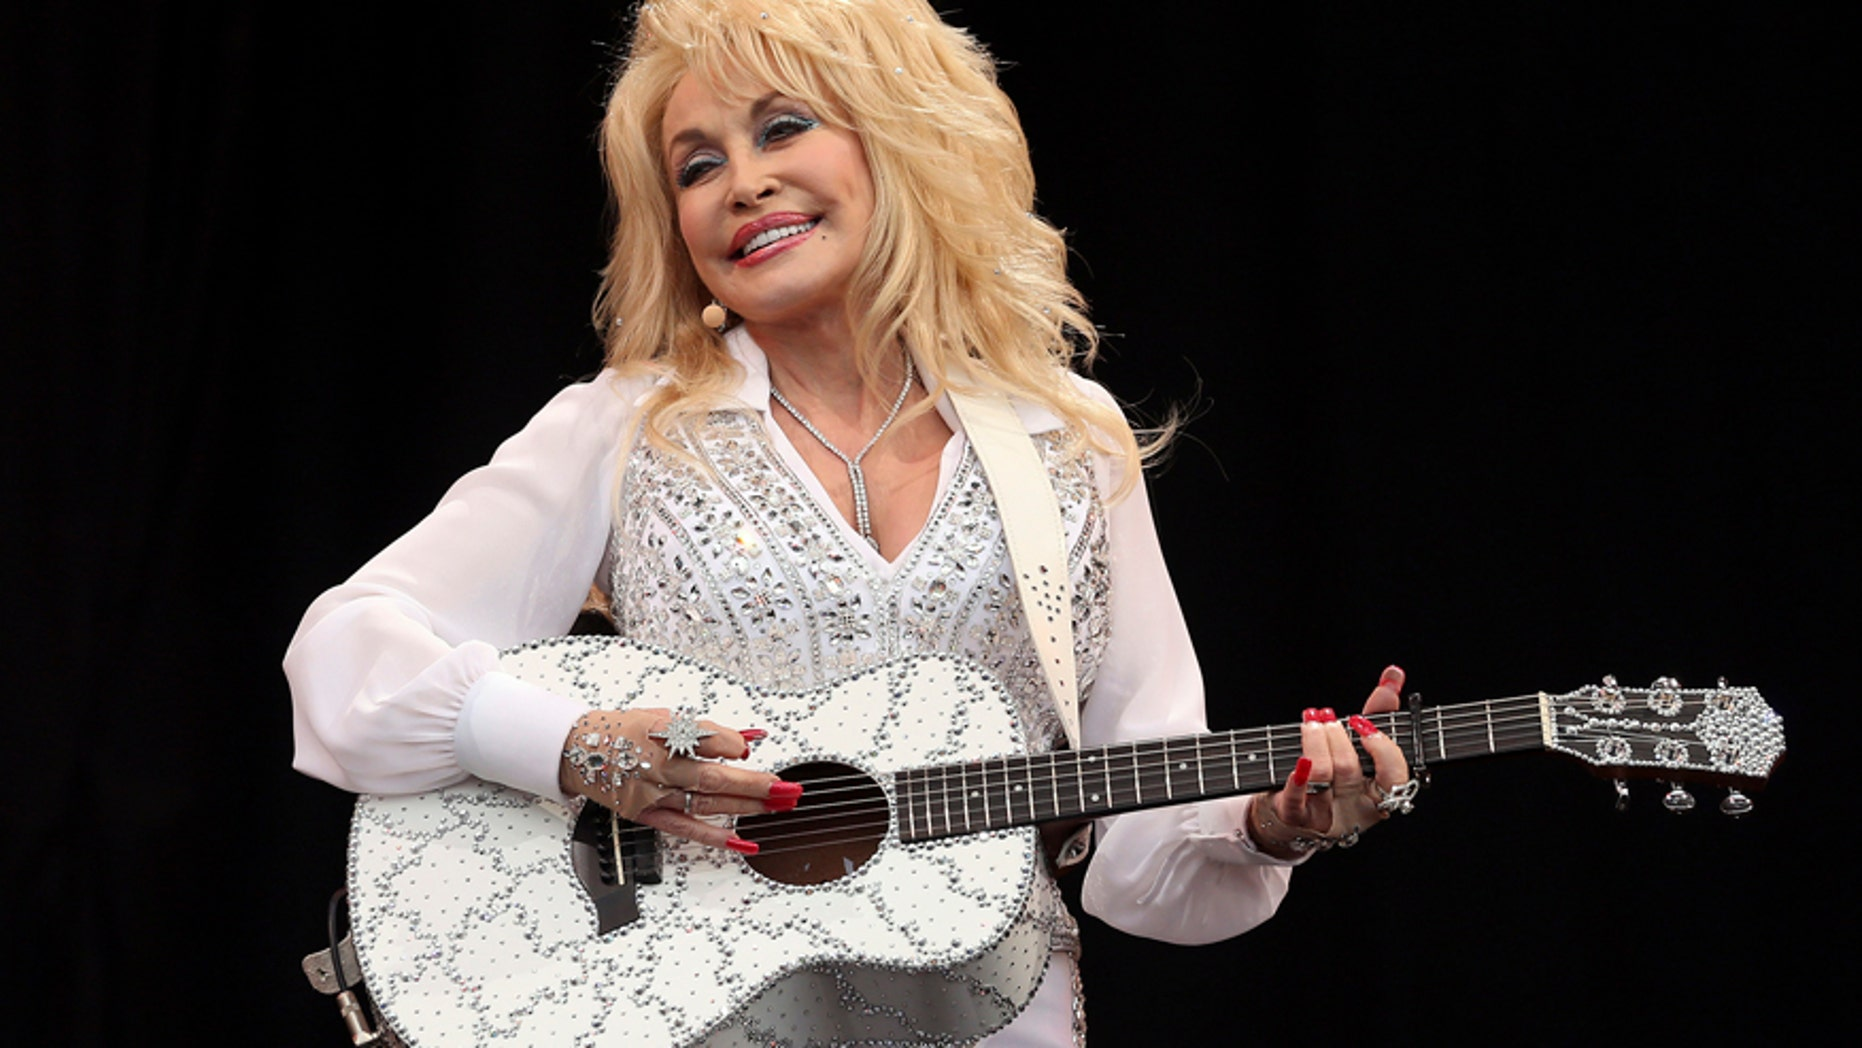 Discussion on this topic: Robert Powell (born 1944), dolly-parton/